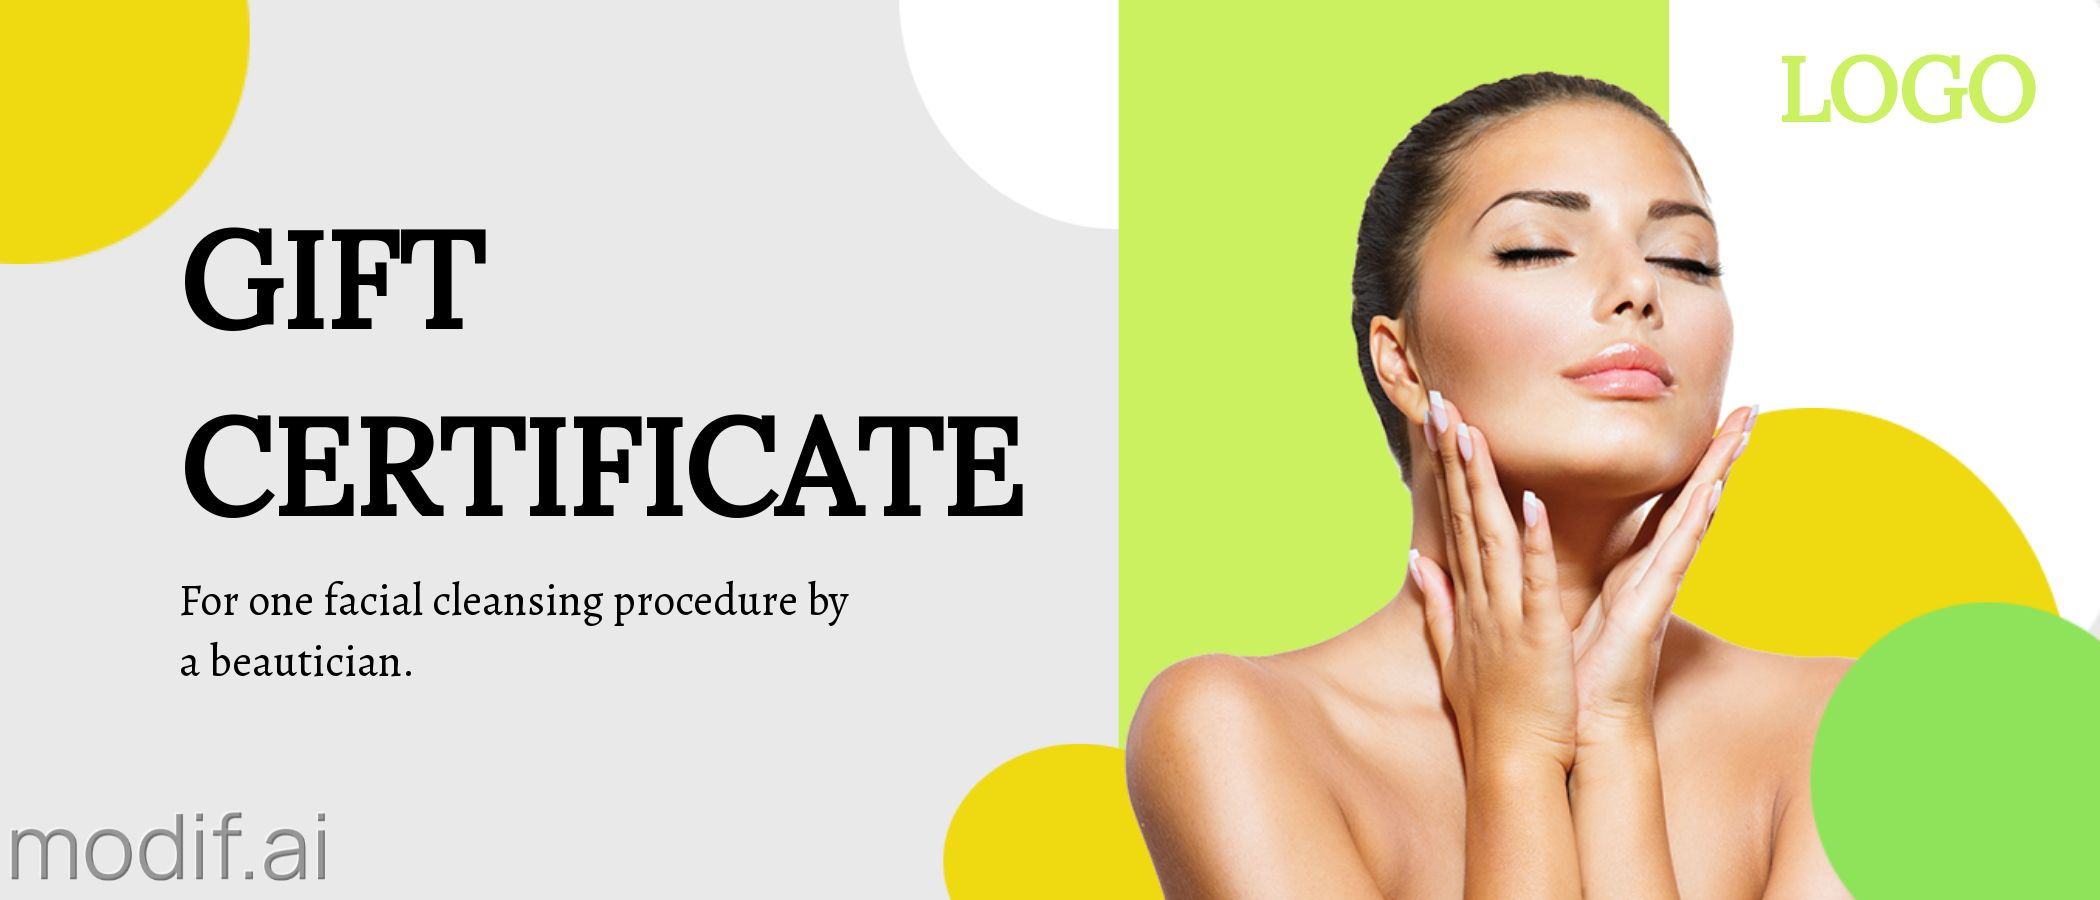 Gift Certificate for a Visit to a Beautician Template